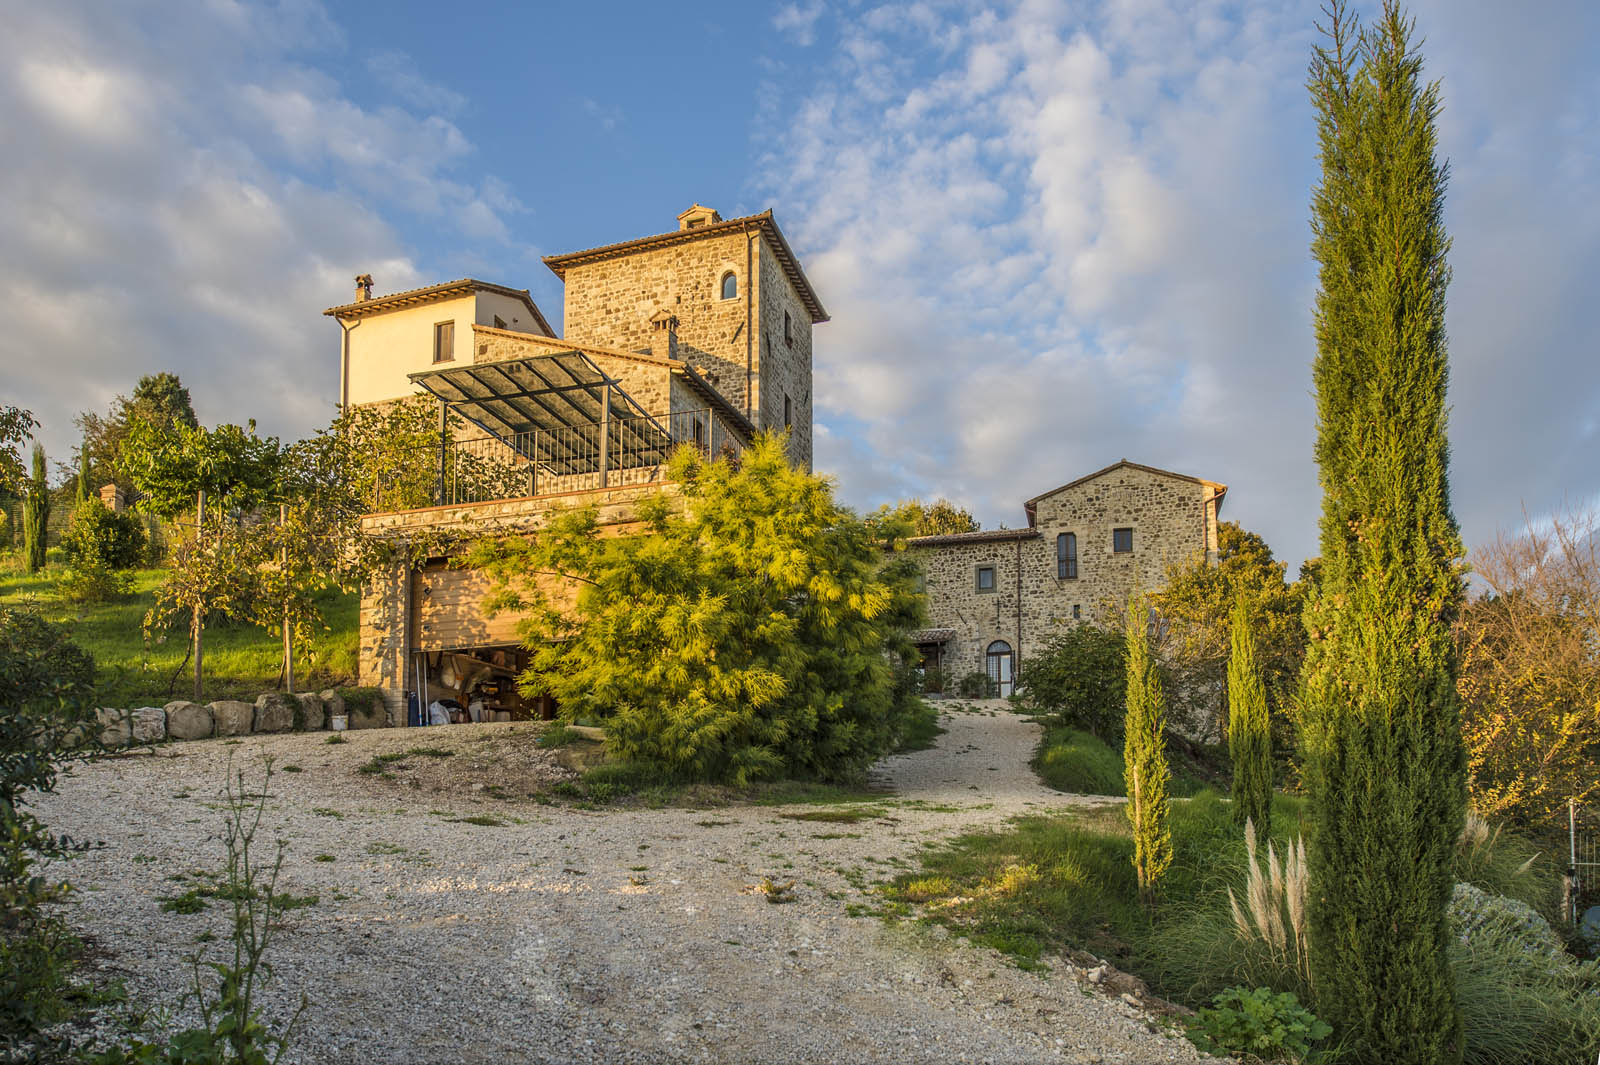 Farmhouse in Umbria